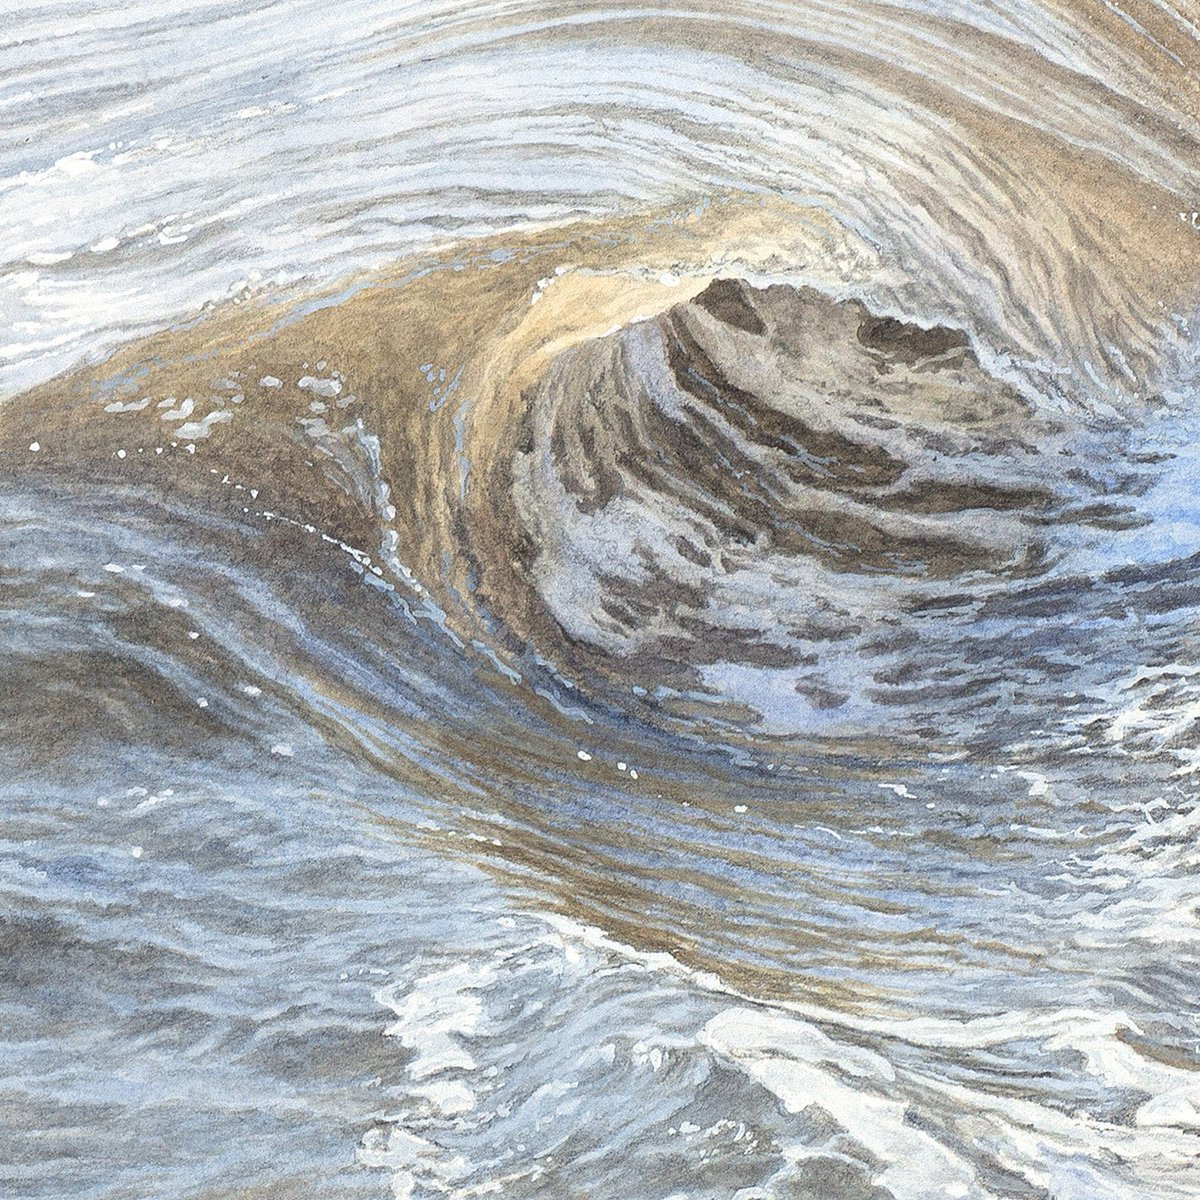 Currently exhibiting online with @RIwatercolours #SGFA member @FlicFlutter combines watercolour with drawing to incorporate mark making & texture in her work  https://www.sgfa.org.uk/members/felicity-flutter-sgfa/… #MeetTheArtist #seascapes #oceanwaves #ArtistOnTwitter #artpic.twitter.com/sy5qZaJ4uH